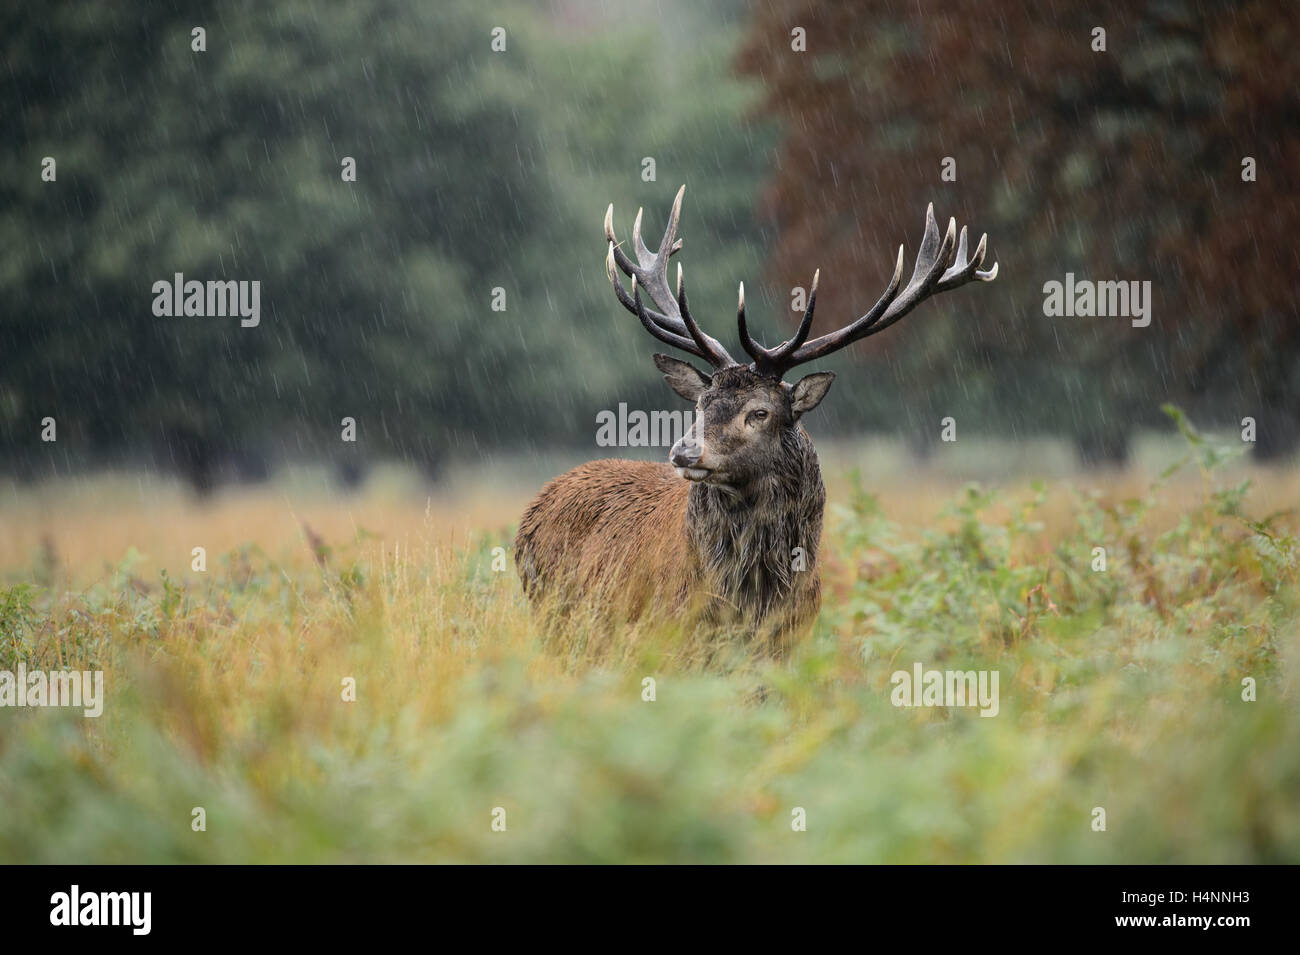 Red deer stag in the rain during the rutting season. Richmond Park, London, UK - Stock Image